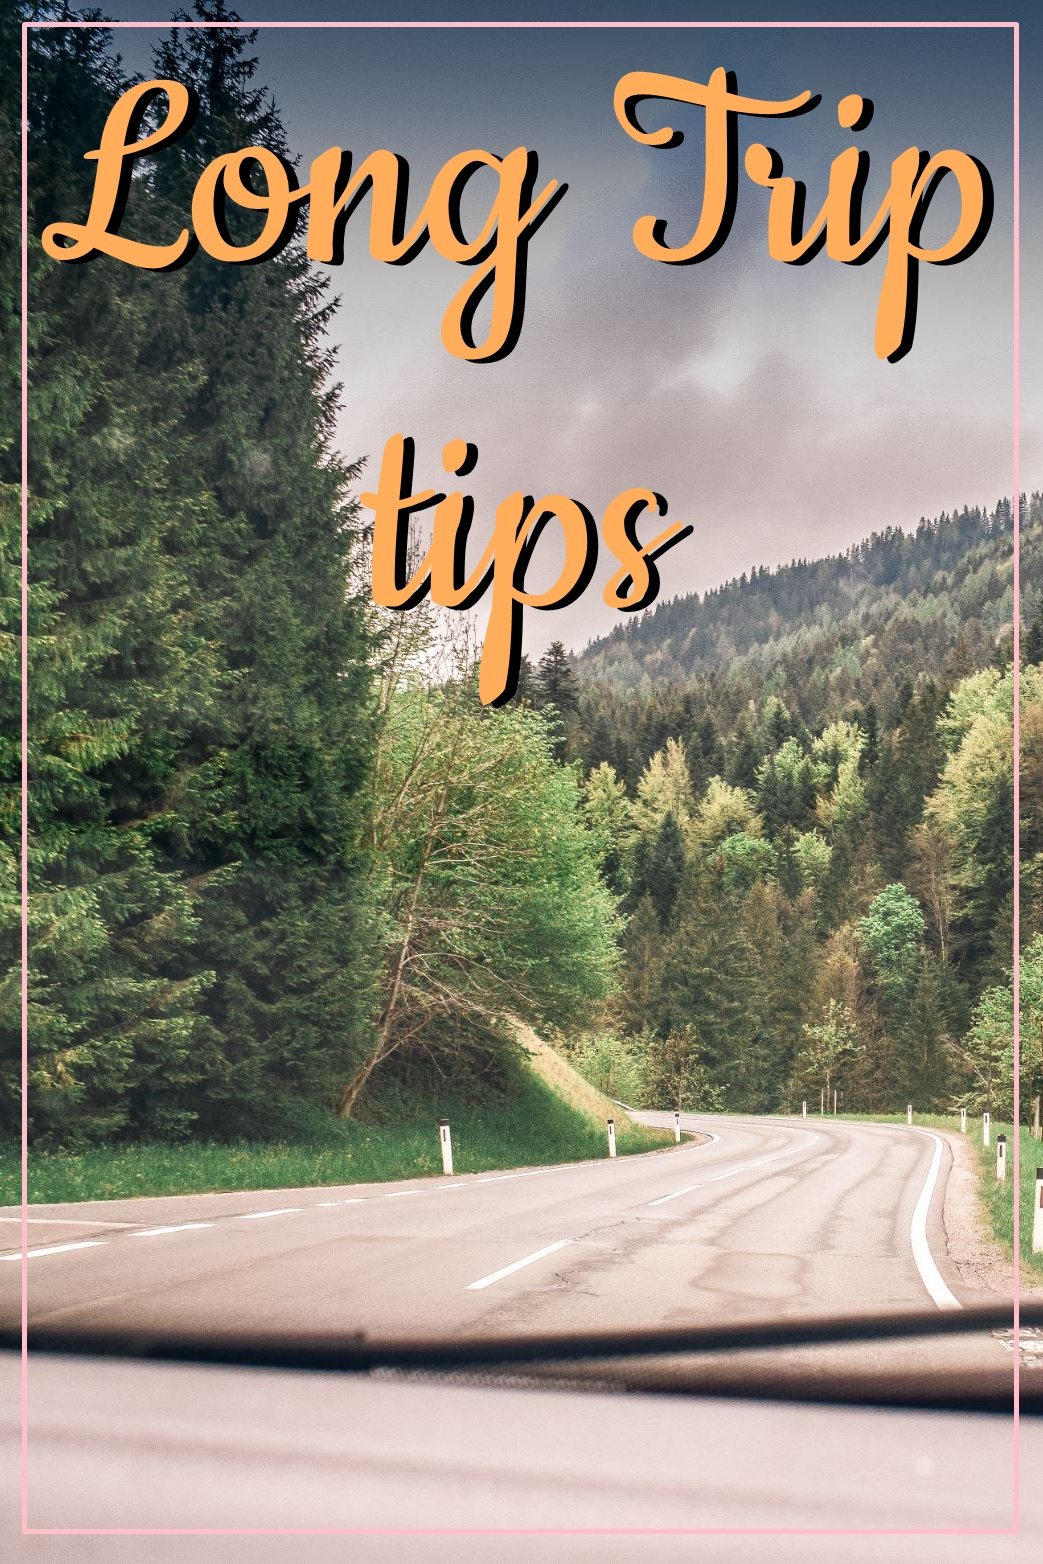 Healthier Alternatives to Pass Time While on a Long Trip